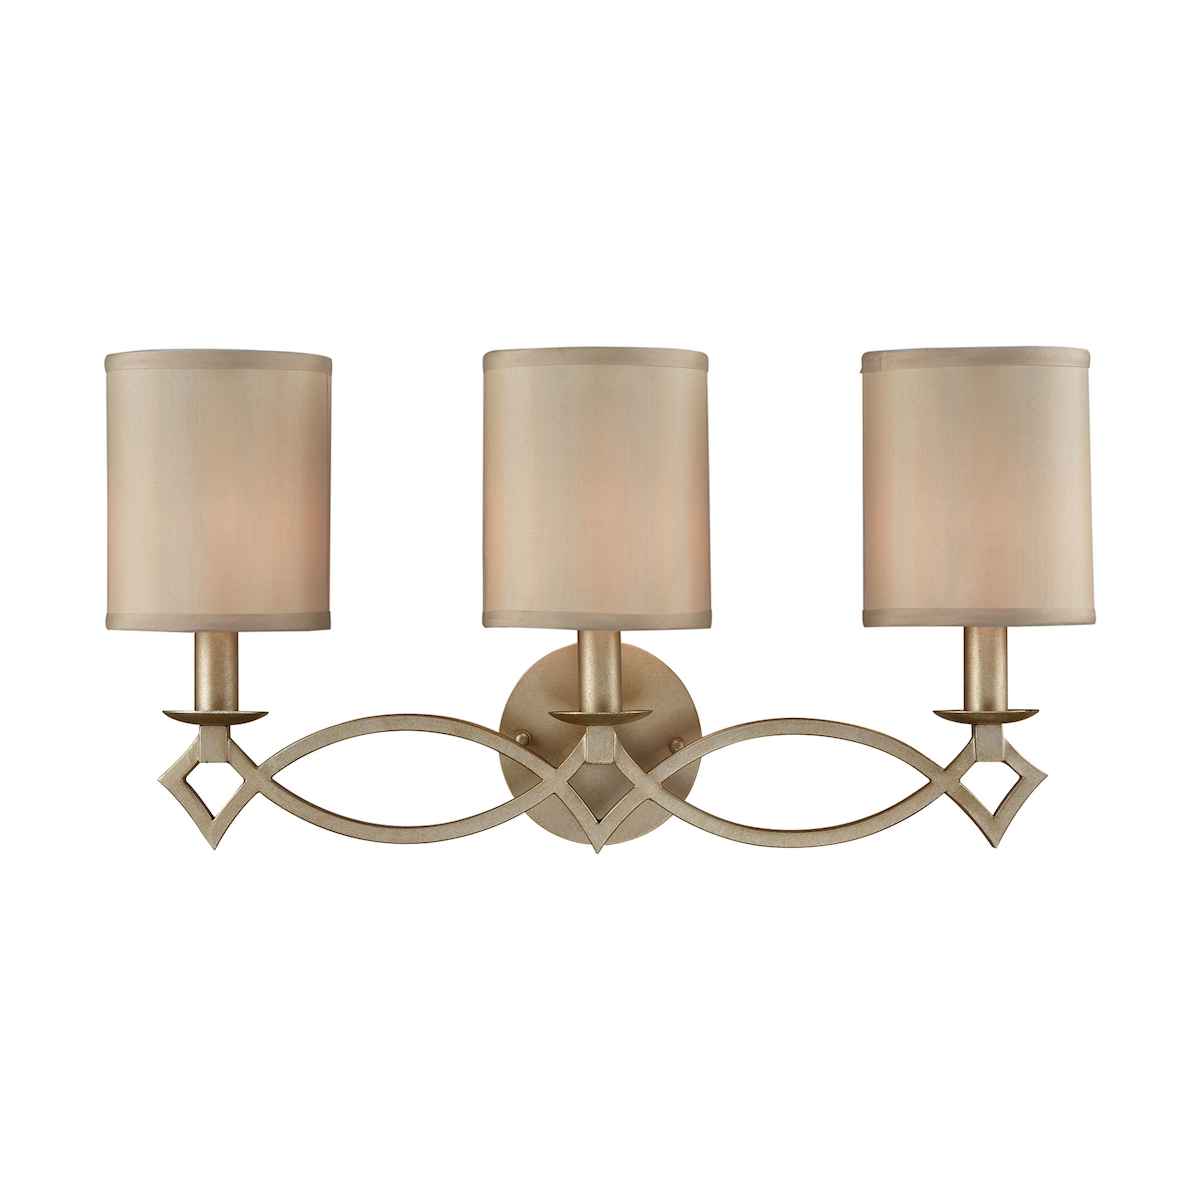 Estonia 3 Light Vanity in Aged Silver with Beige Half-Shades